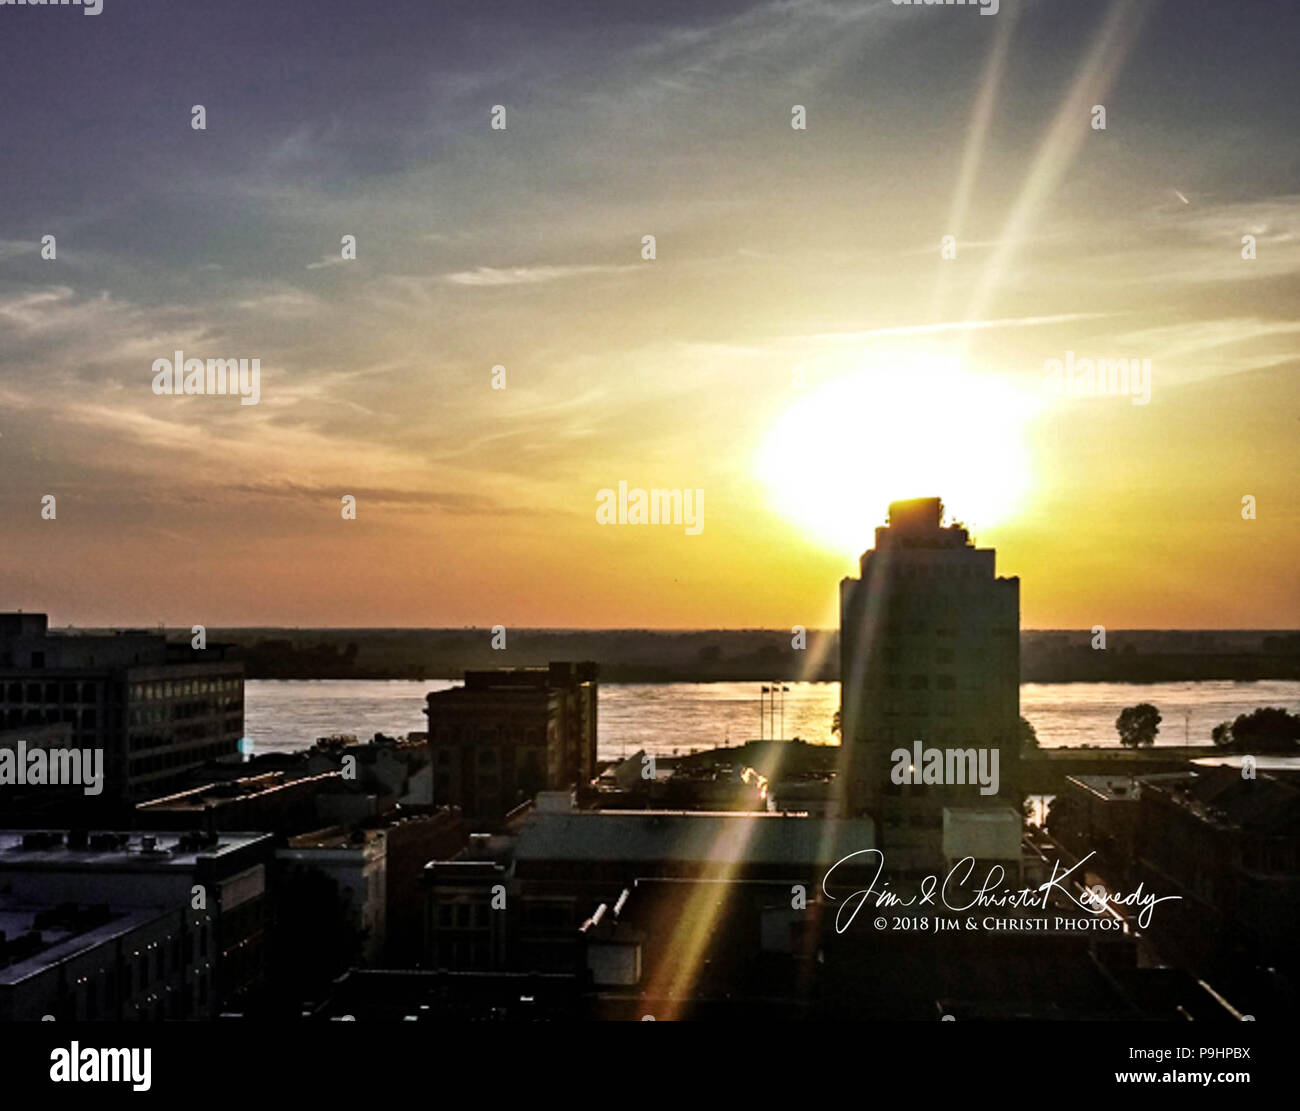 beautiful landscapes and city scapes, - Stock Image